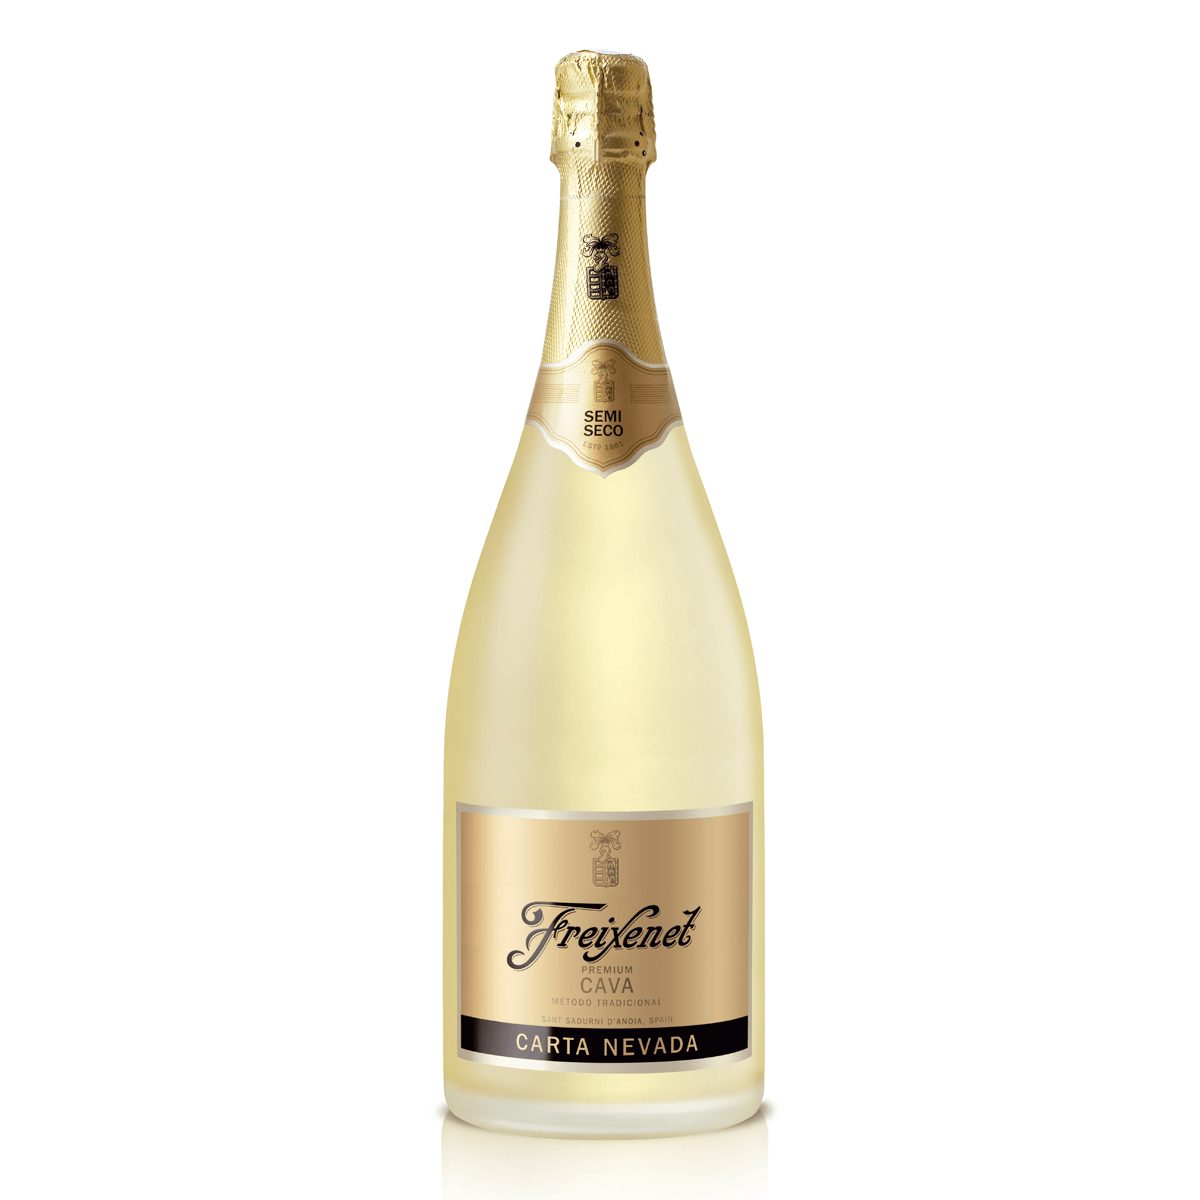 Angebote Sekt Freixenet Carta Nevada Semi Seco 1 5l Sekt And Co